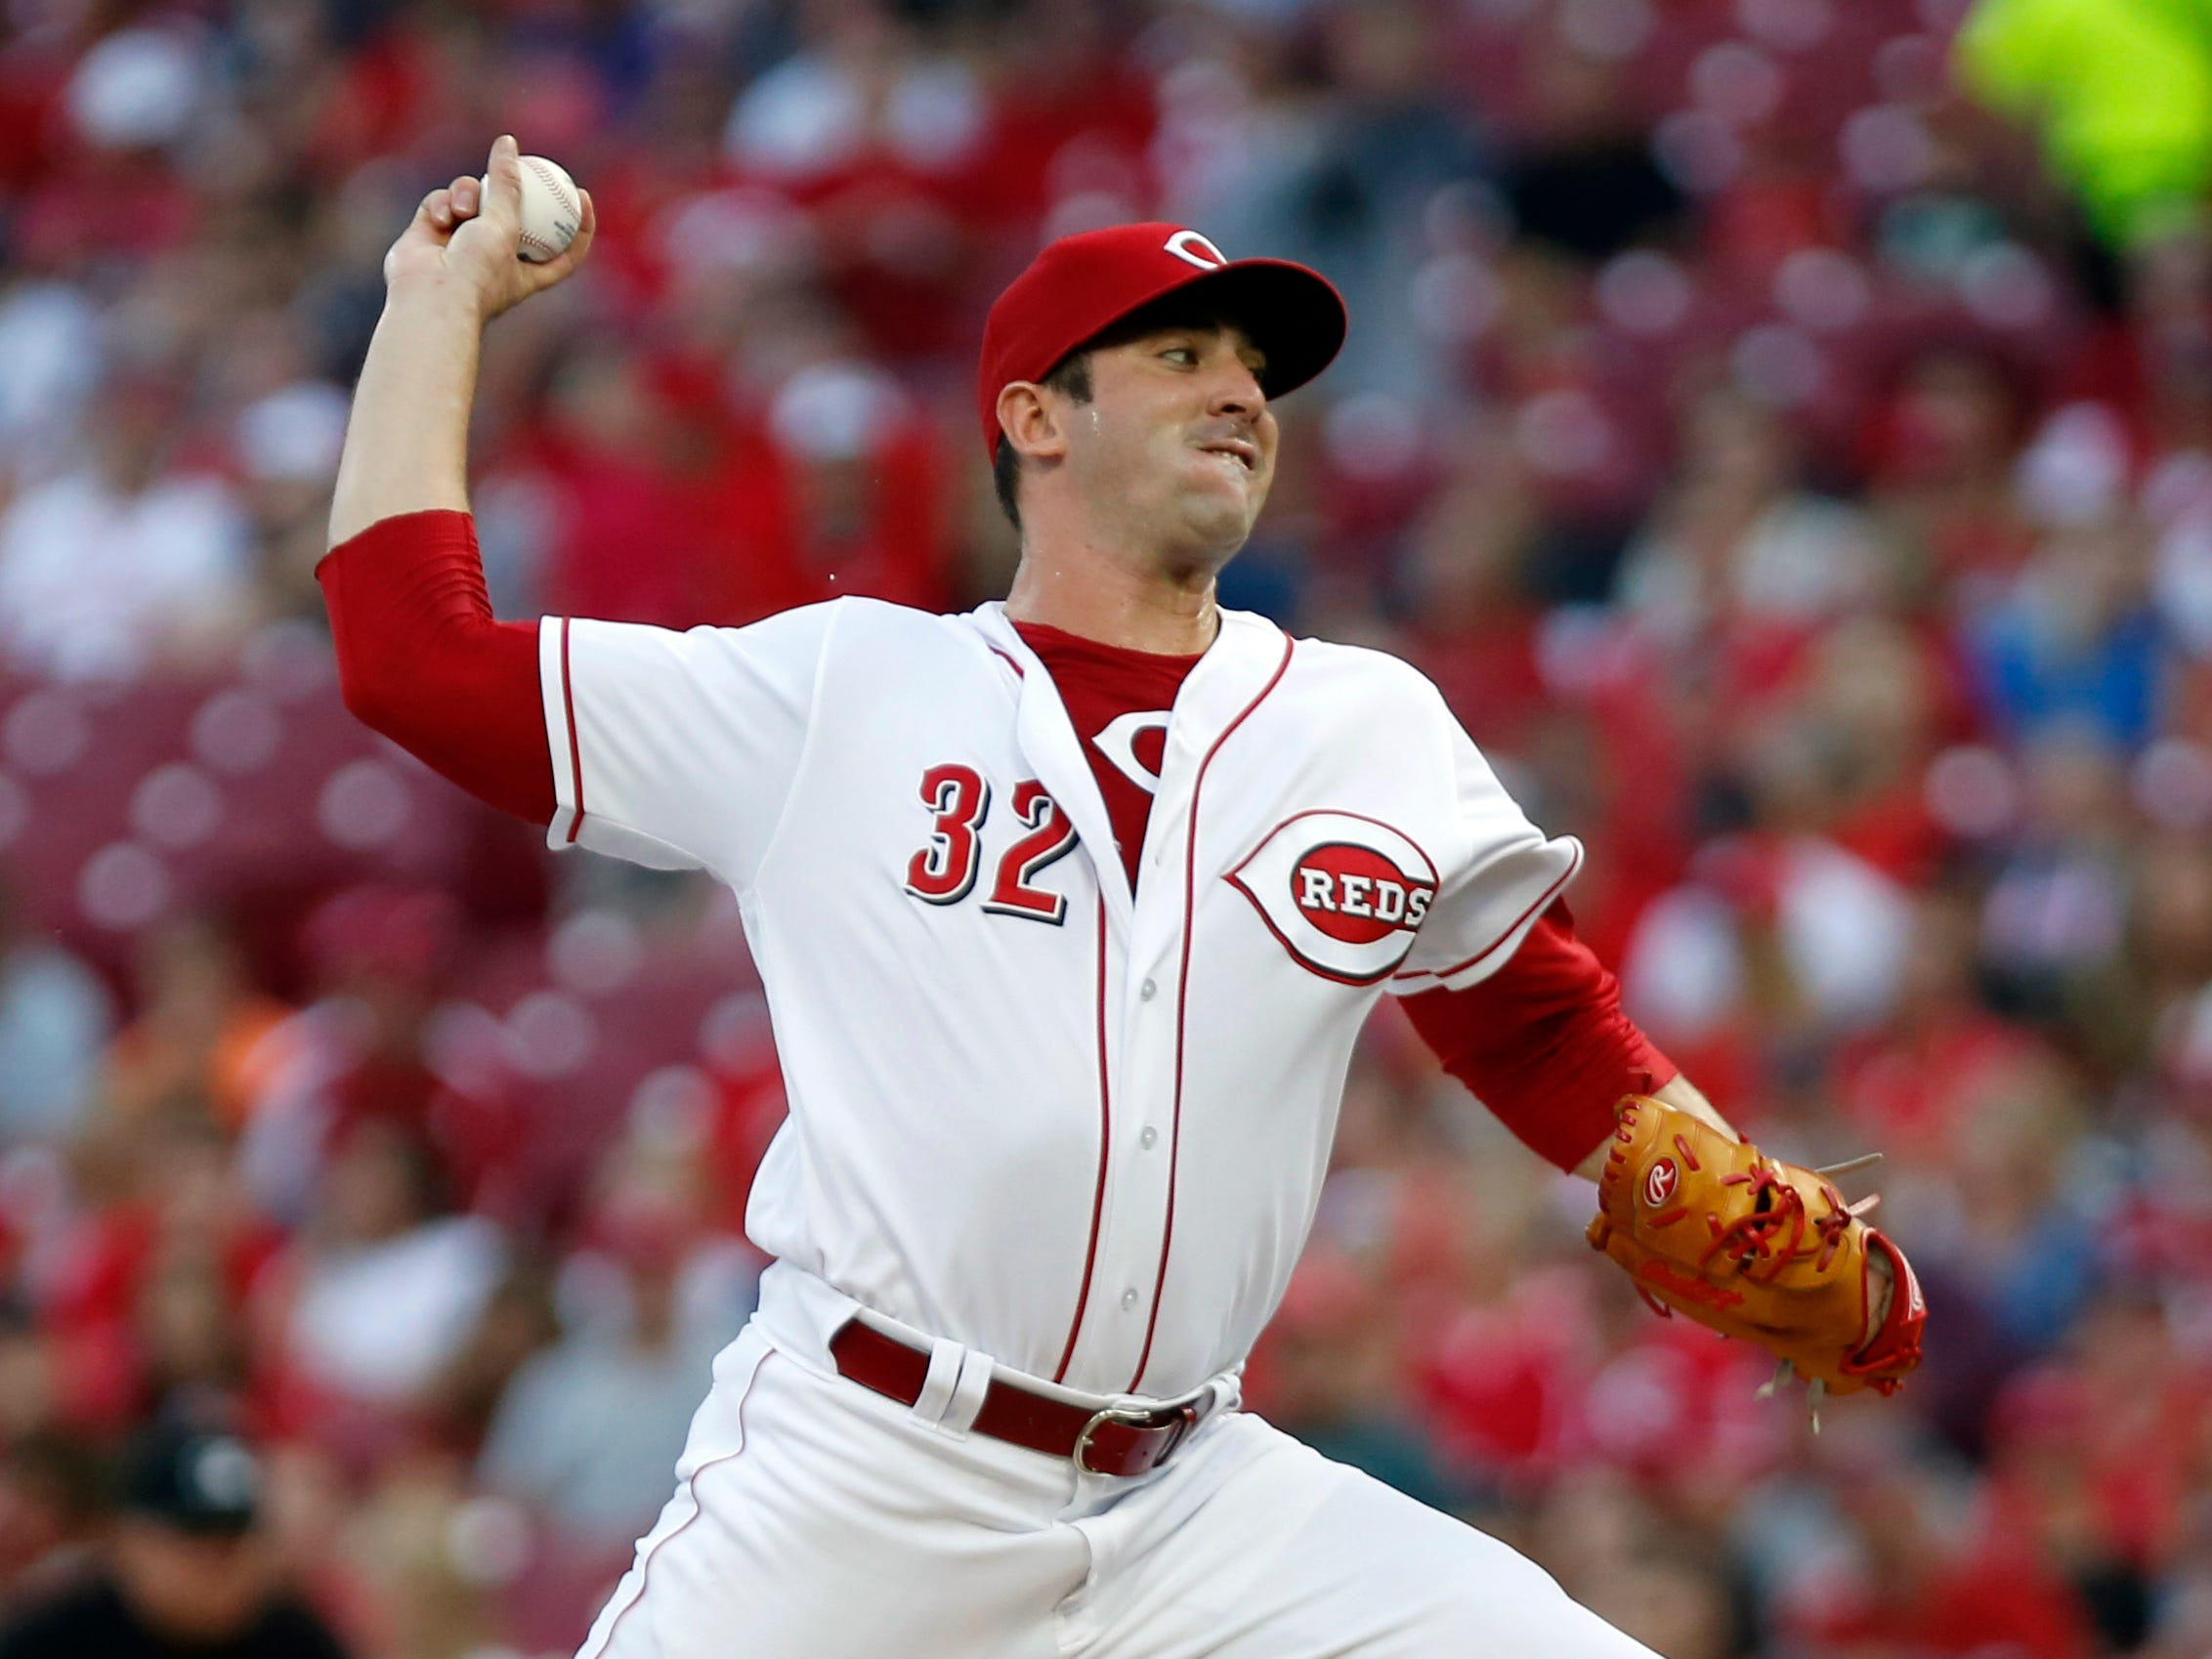 Aug 11, 2018; Cincinnati, OH, USA; Cincinnati Reds starting pitcher Matt Harvey (32) throws against the Arizona Diamondbacks during the first inning at Great American Ball Park. Mandatory Credit: David Kohl-USA TODAY Sports